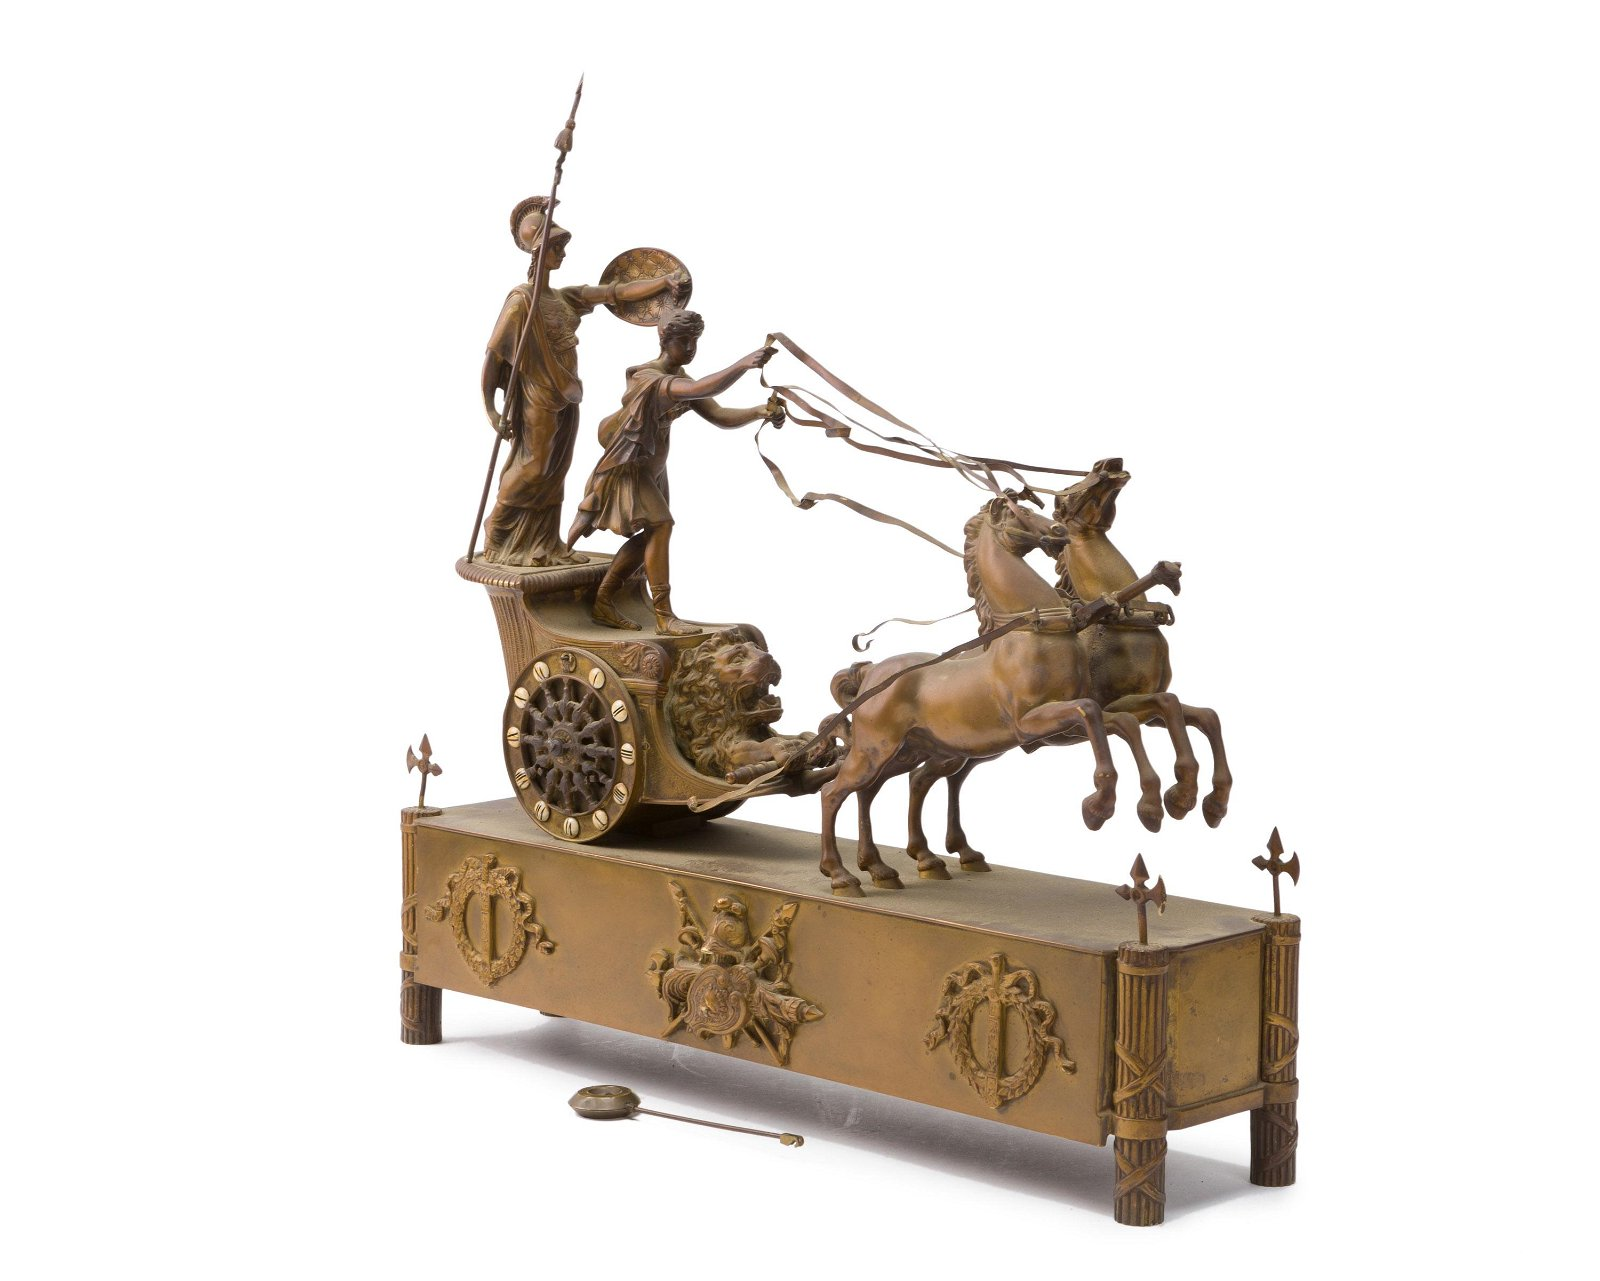 A French bronze mantle clock